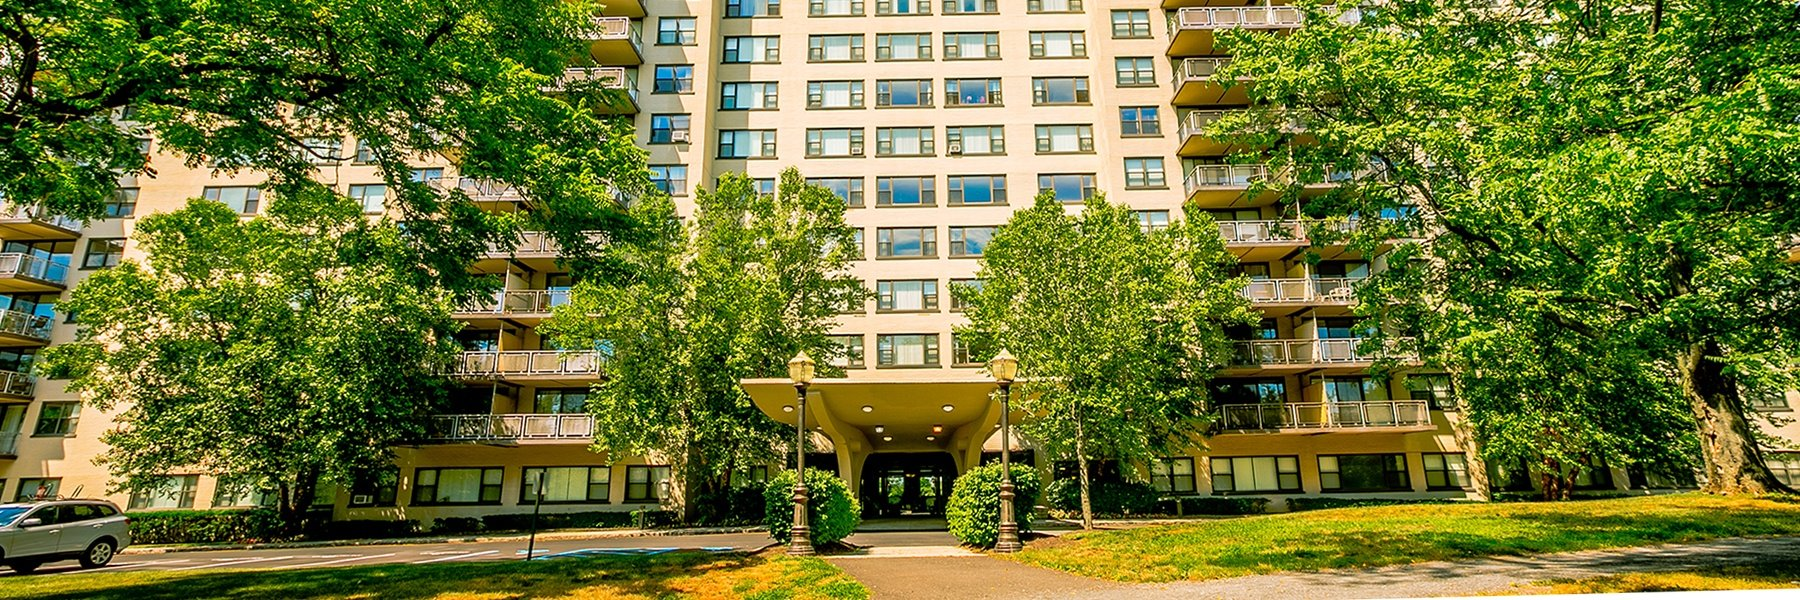 The Colony House Apartments For Rent in New Brunswick, NJ Building View